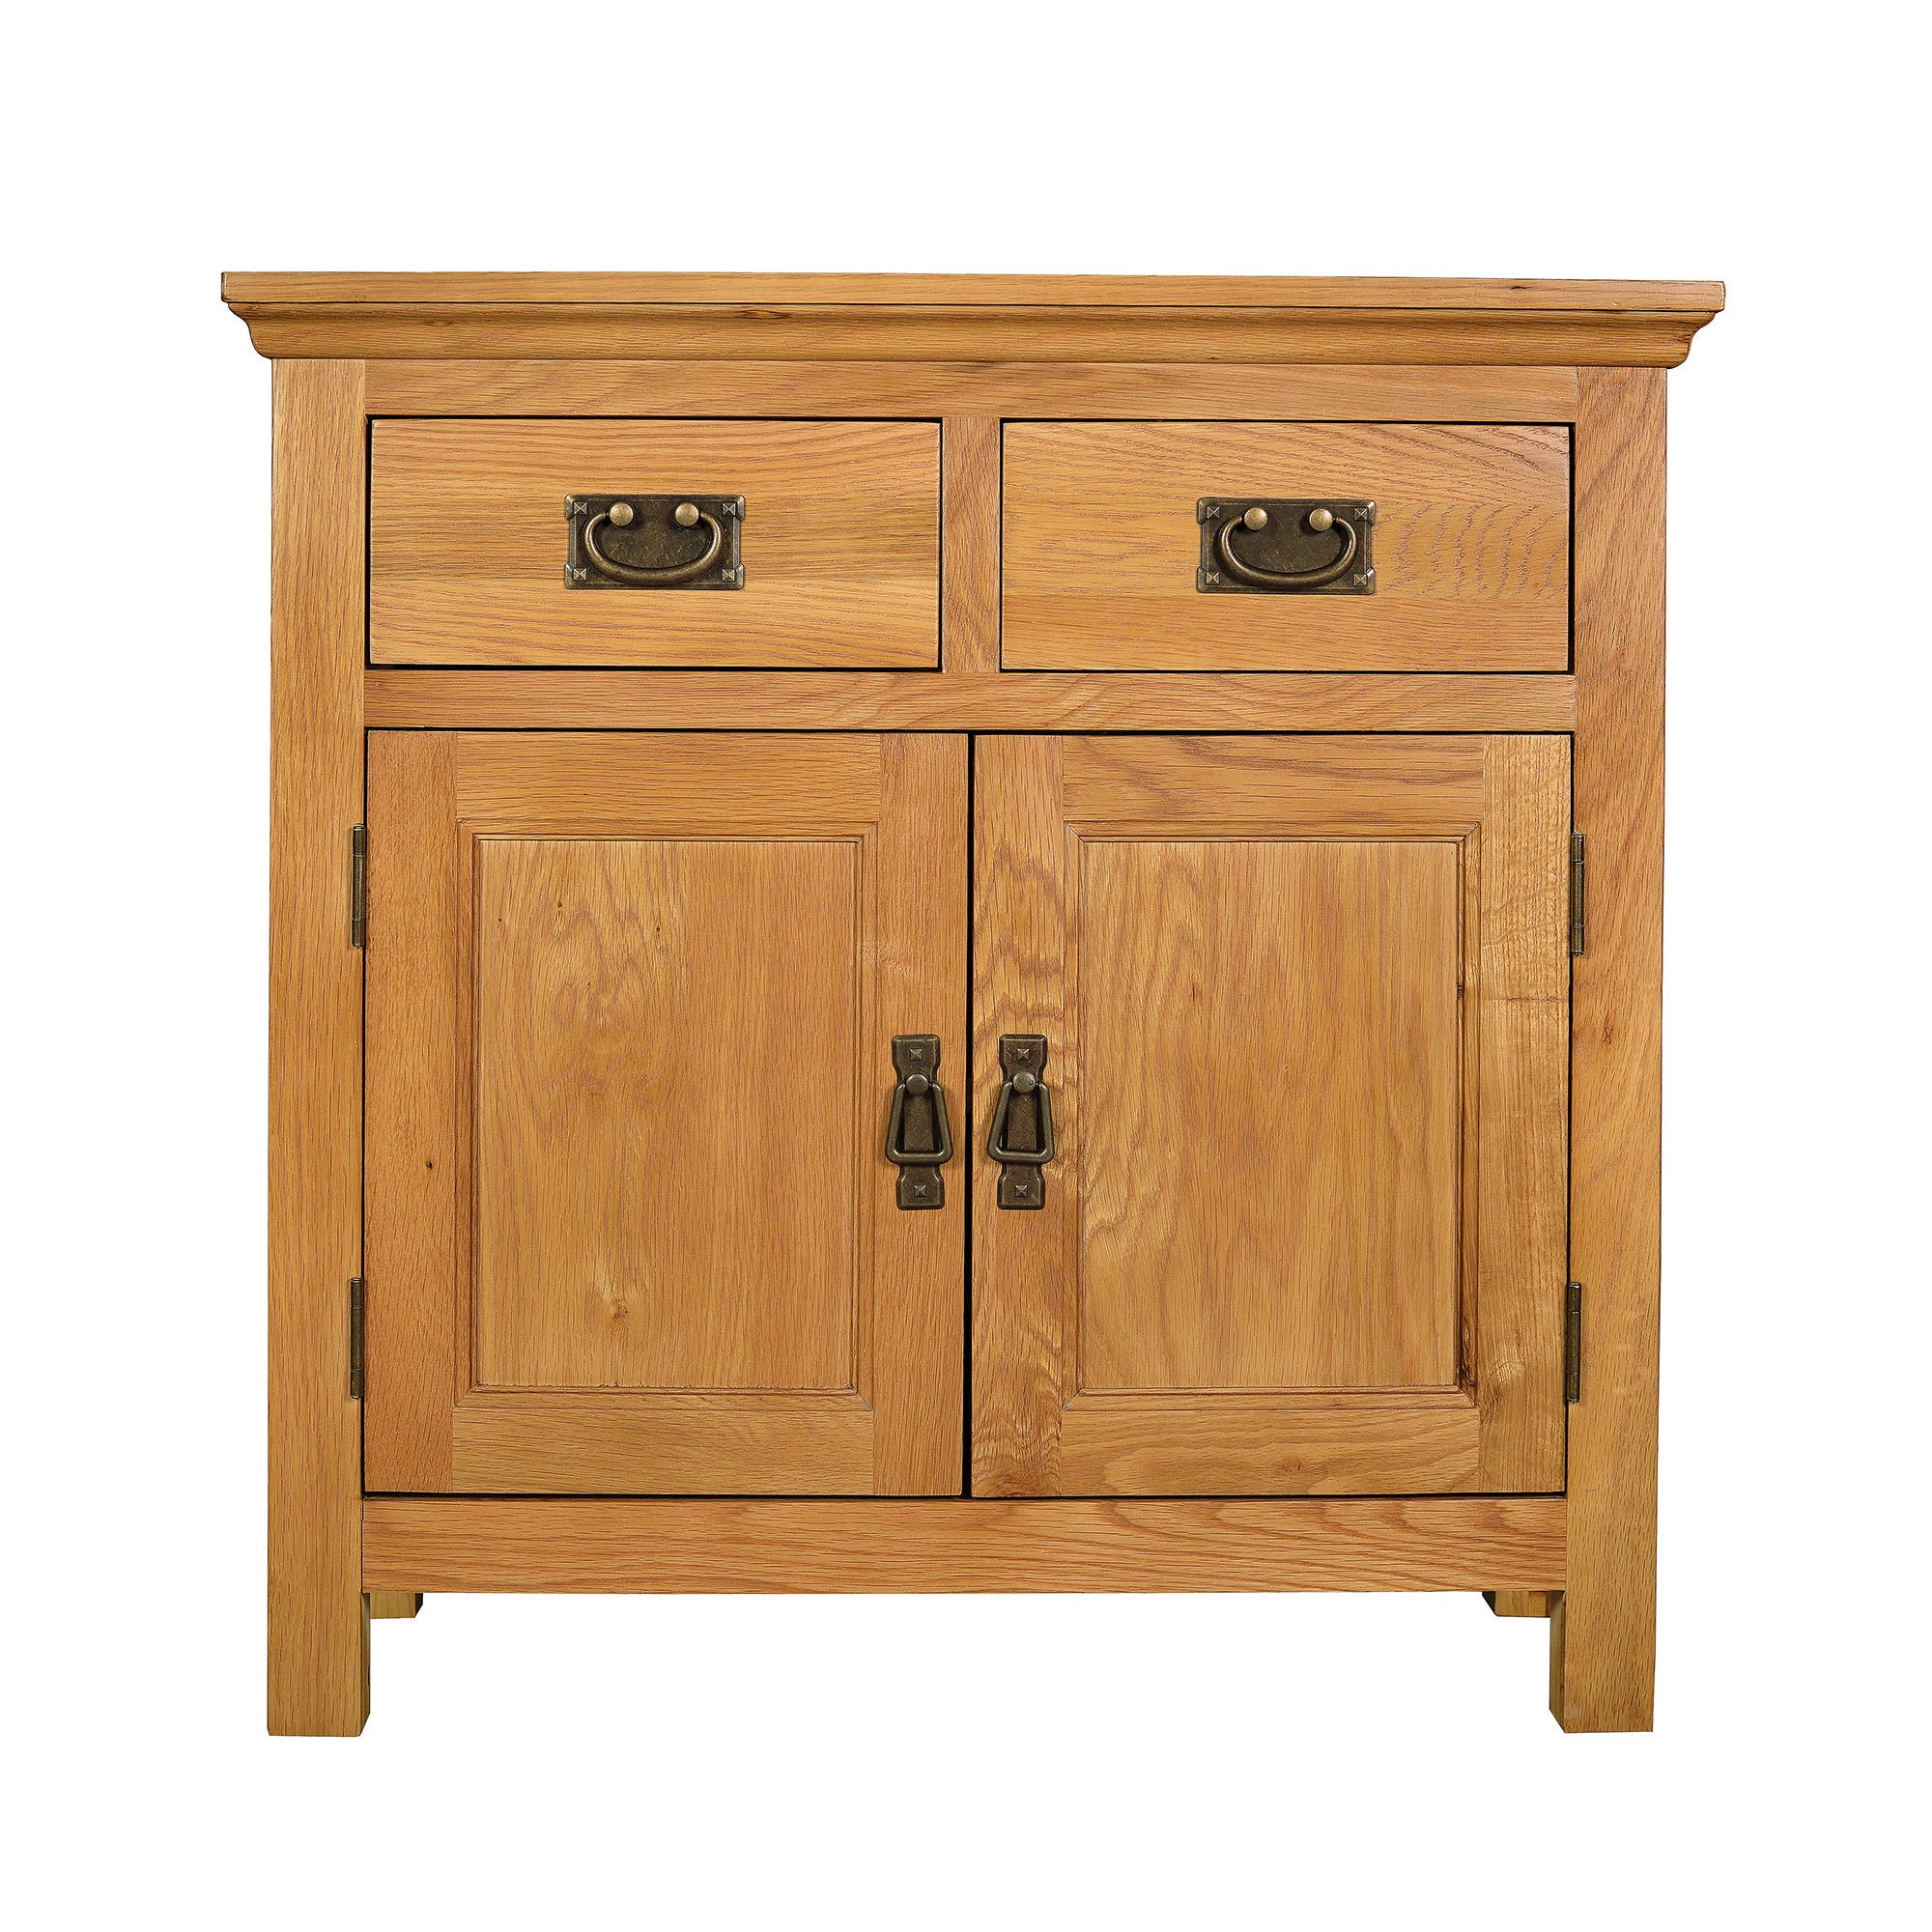 Dorchester Oak Dining Furniture Collection